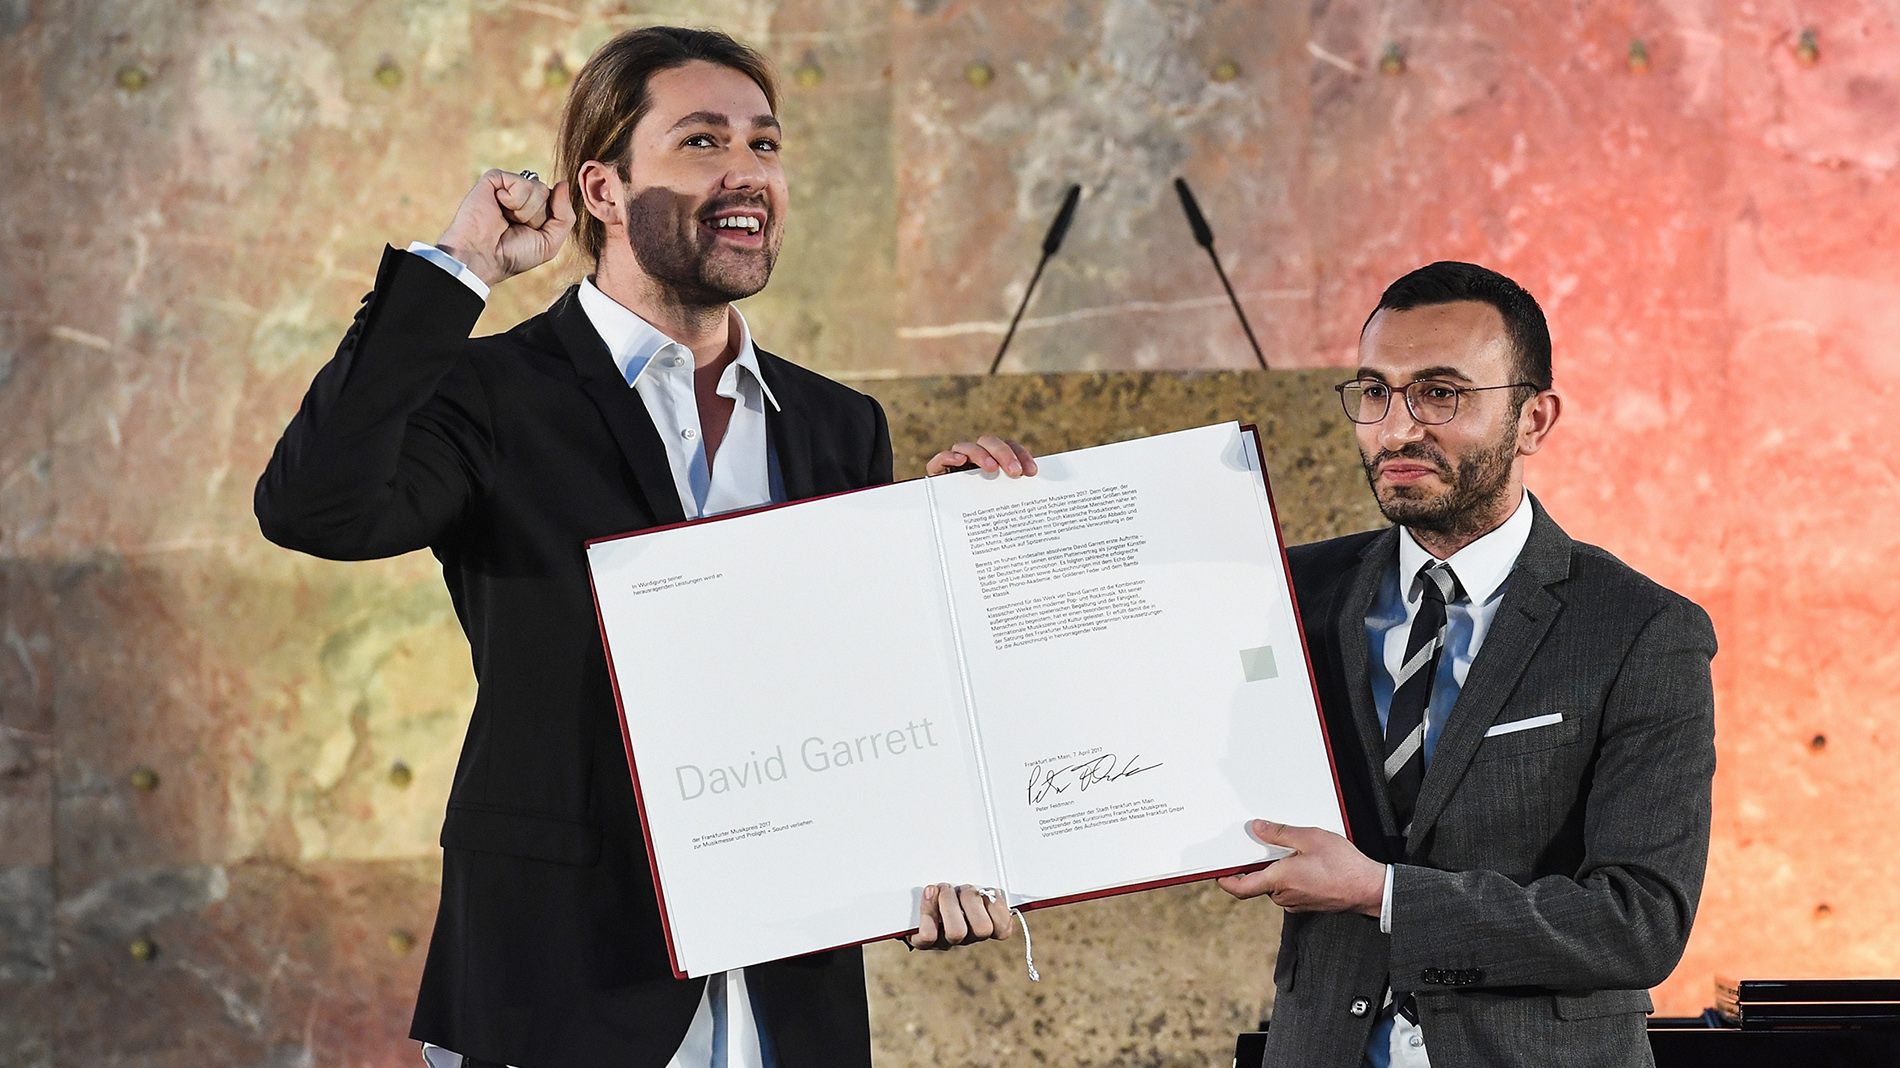 The Music Prize is handed over to David Garrett